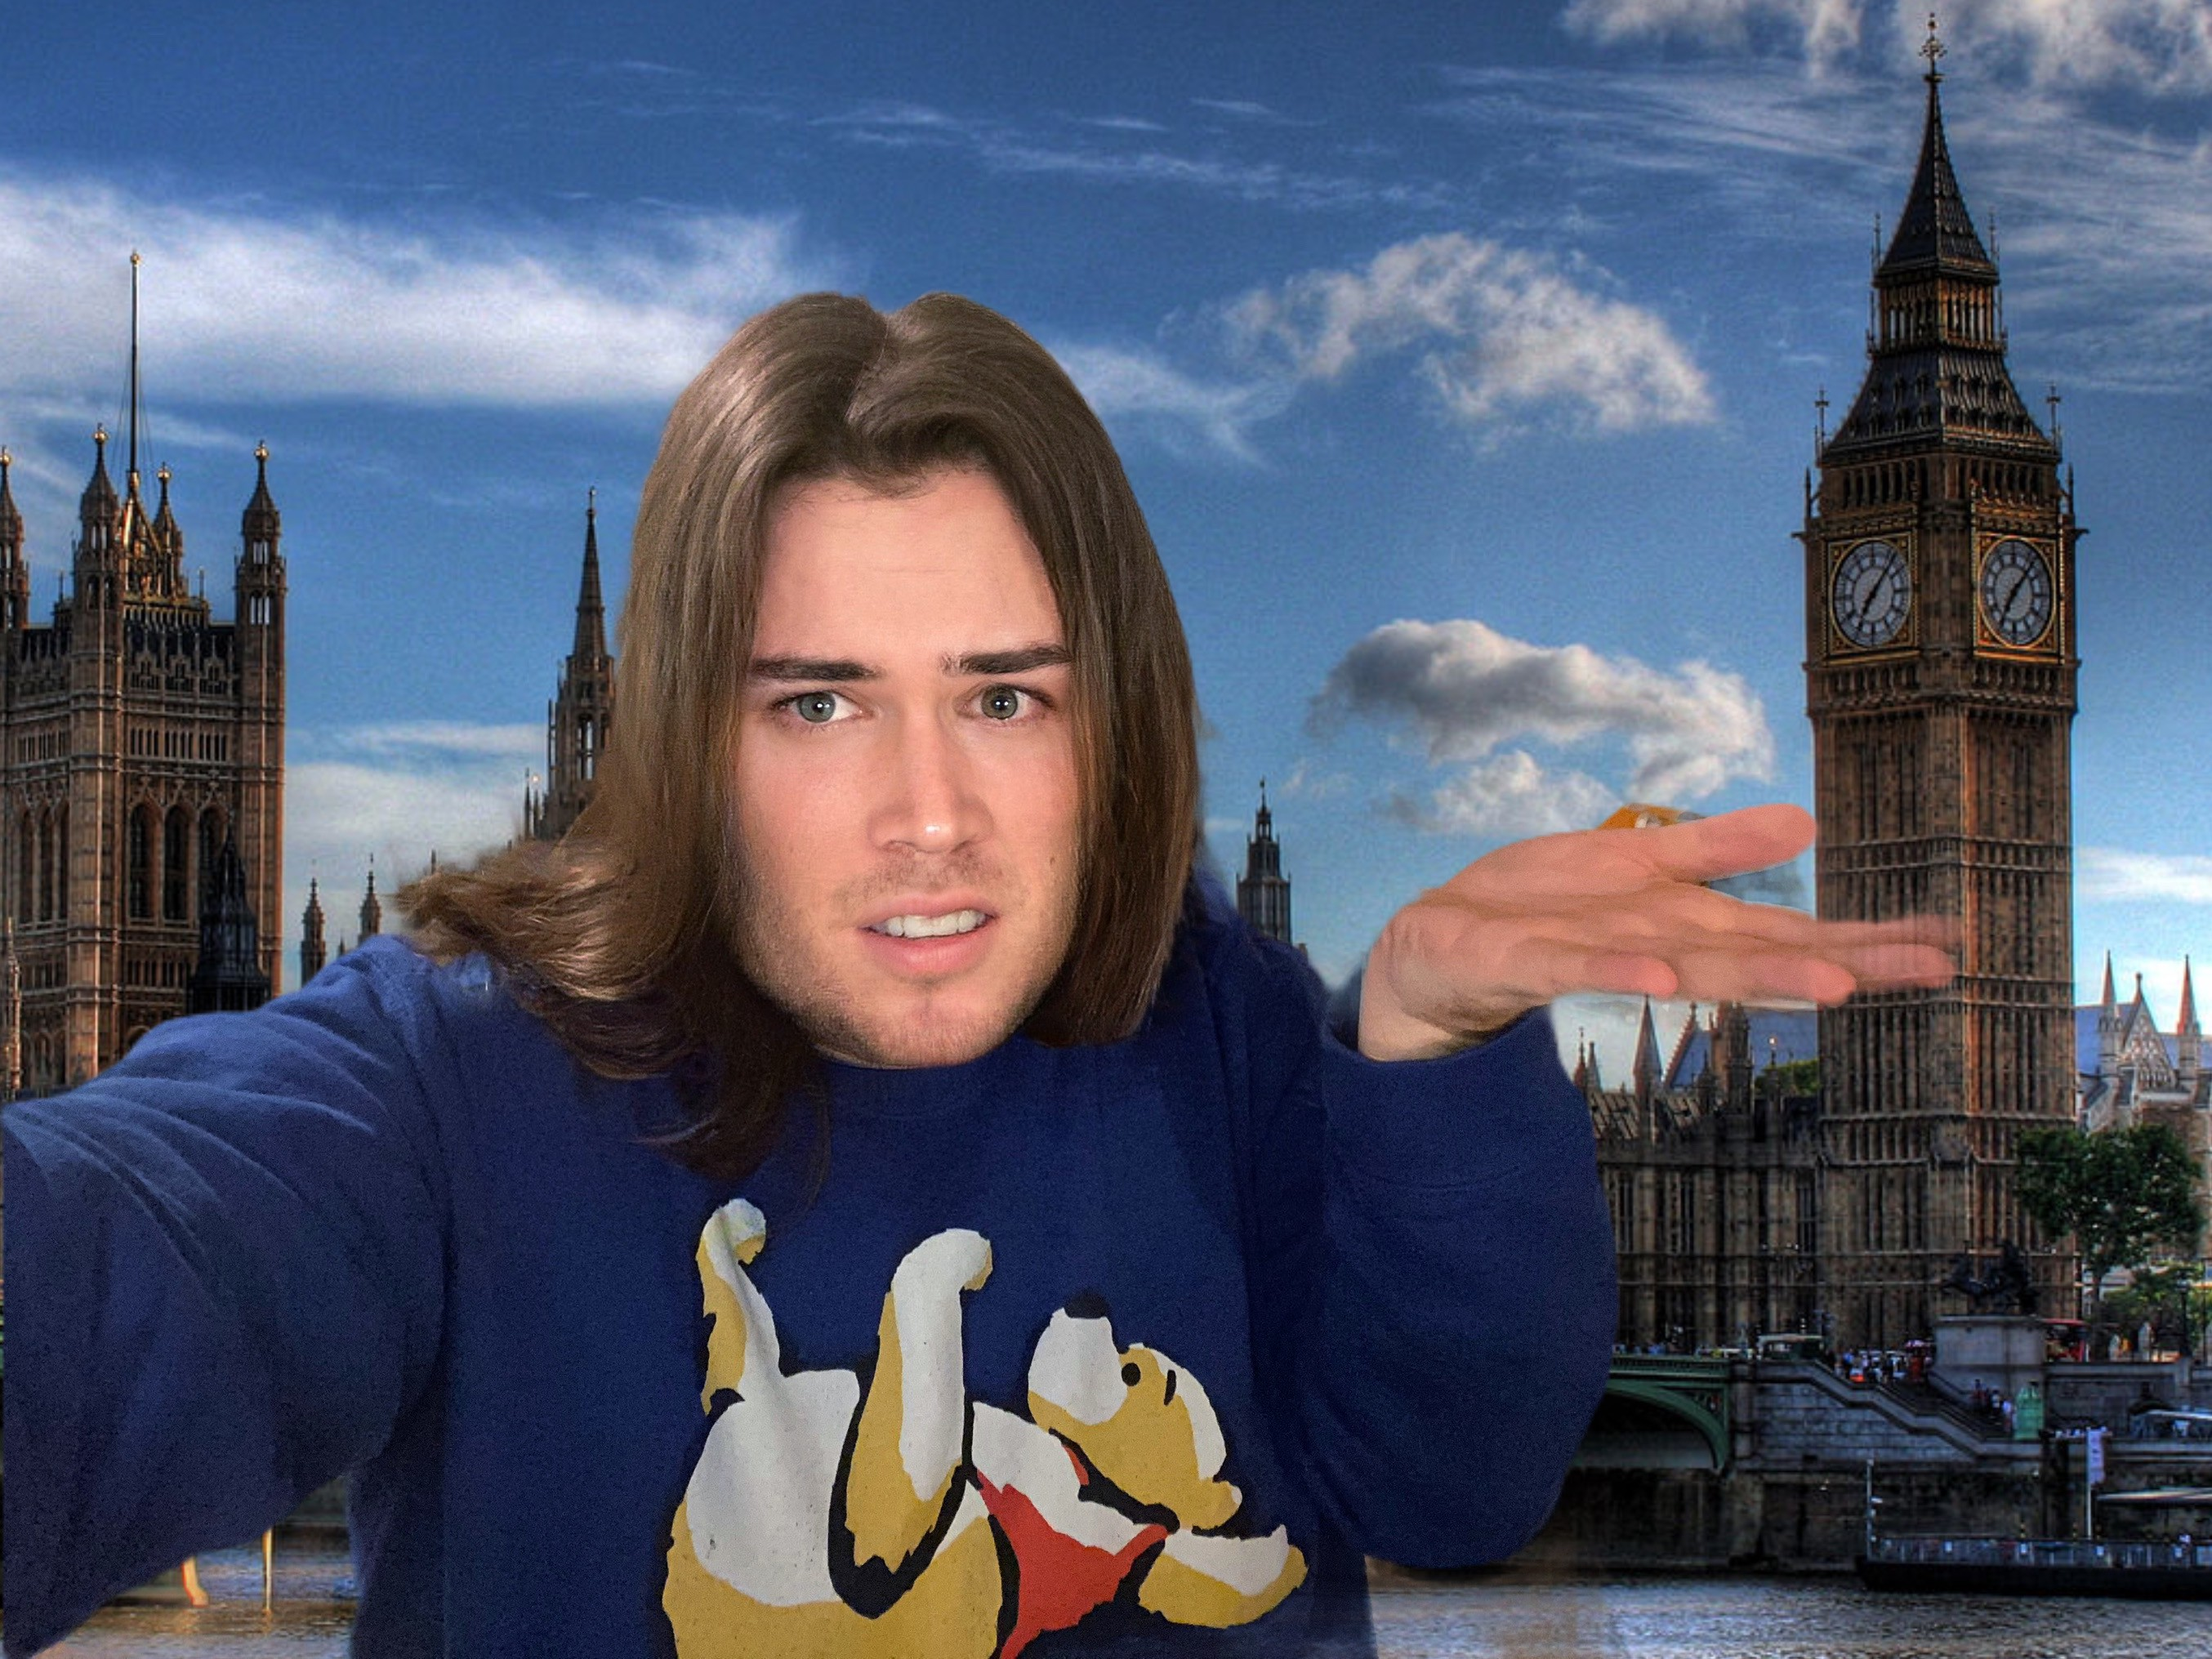 A photo of the author shrugging and looking confused in front of the Palace of Westminster.